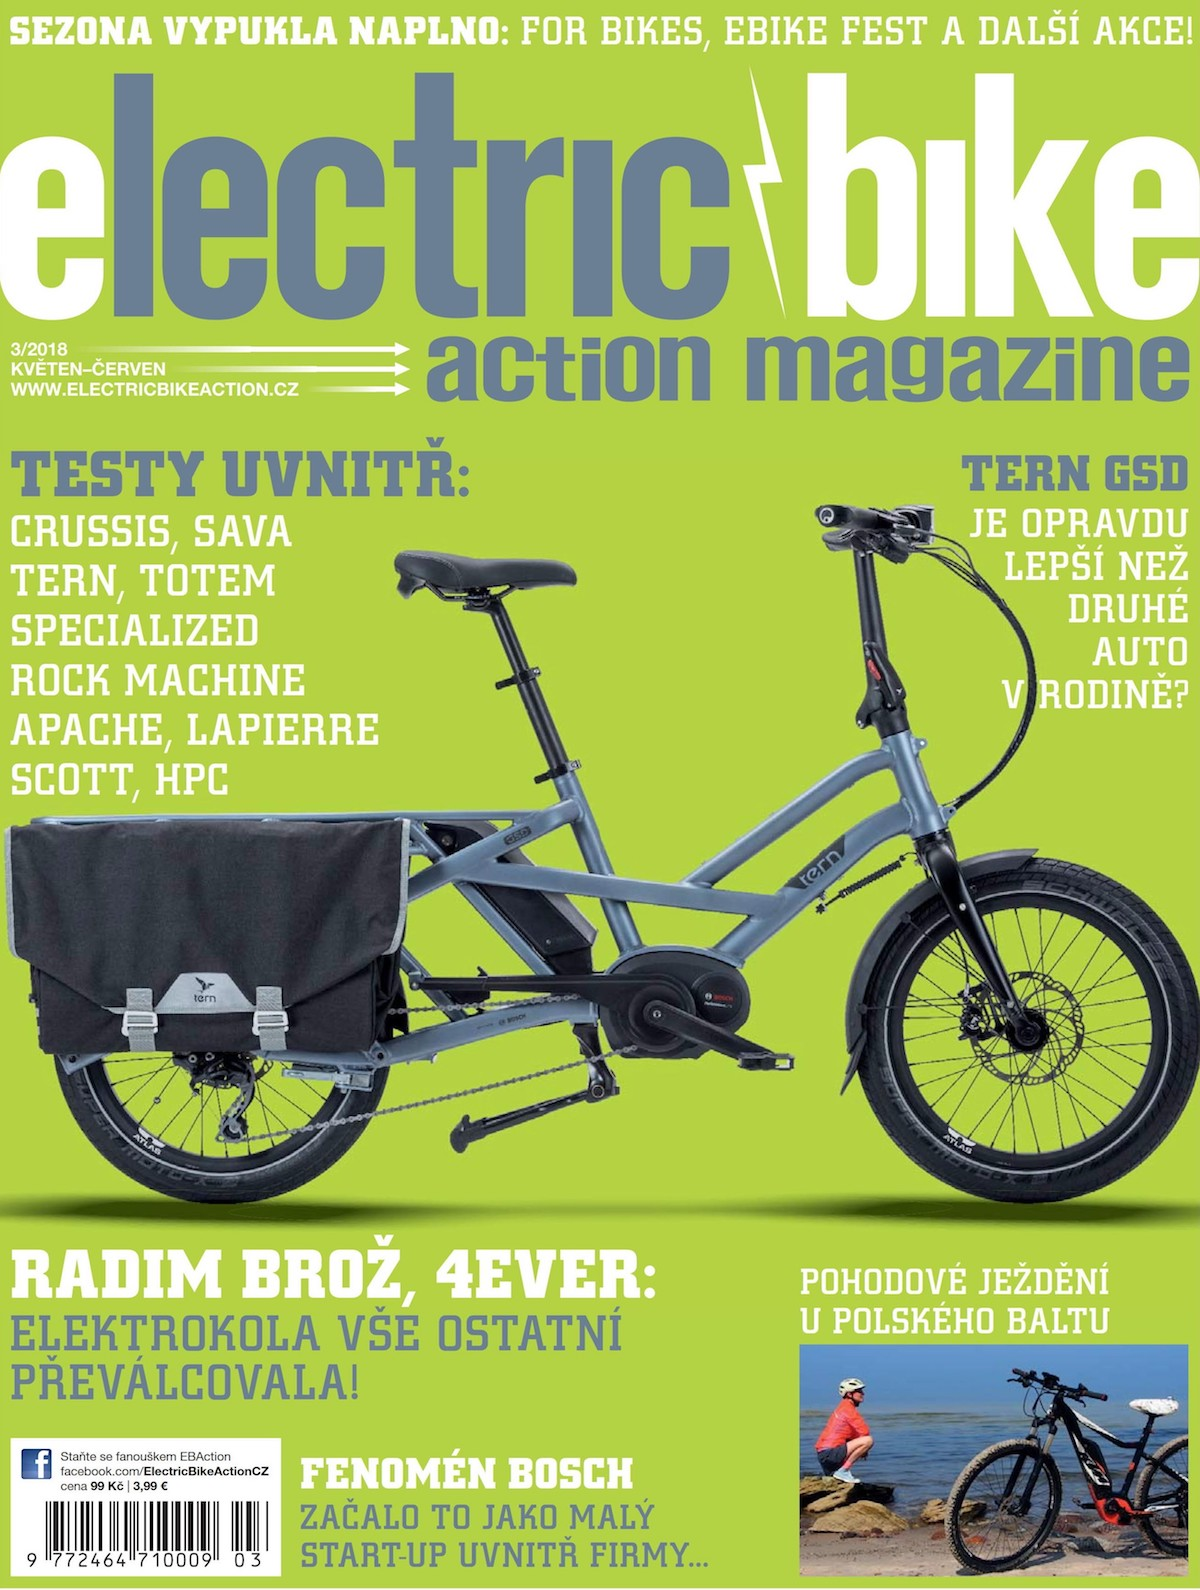 Electric Bike Action, květen-červen 2018